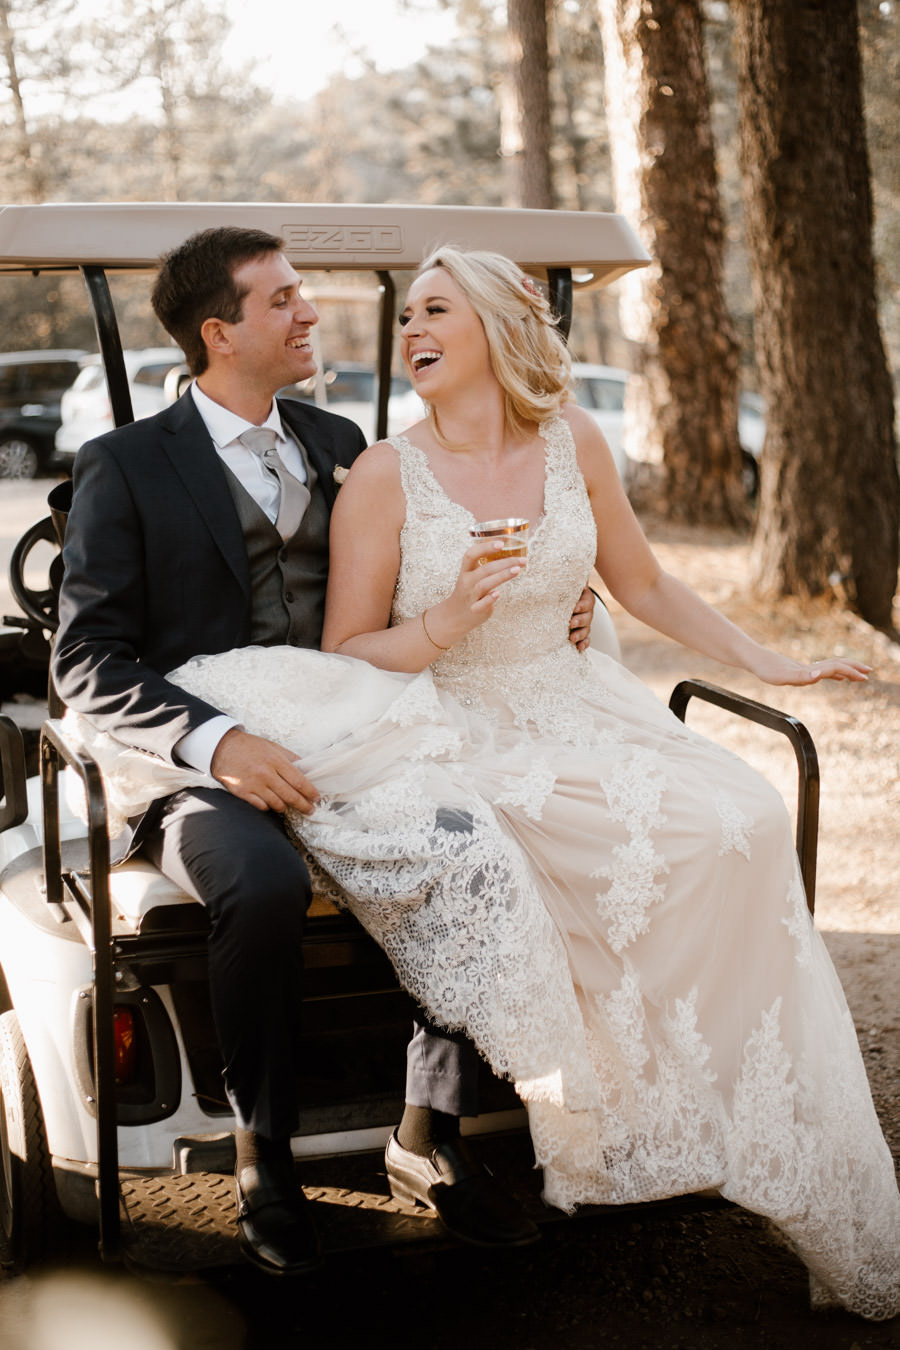 bride and groom on the cart laughing and being happy ready for their sunset photos